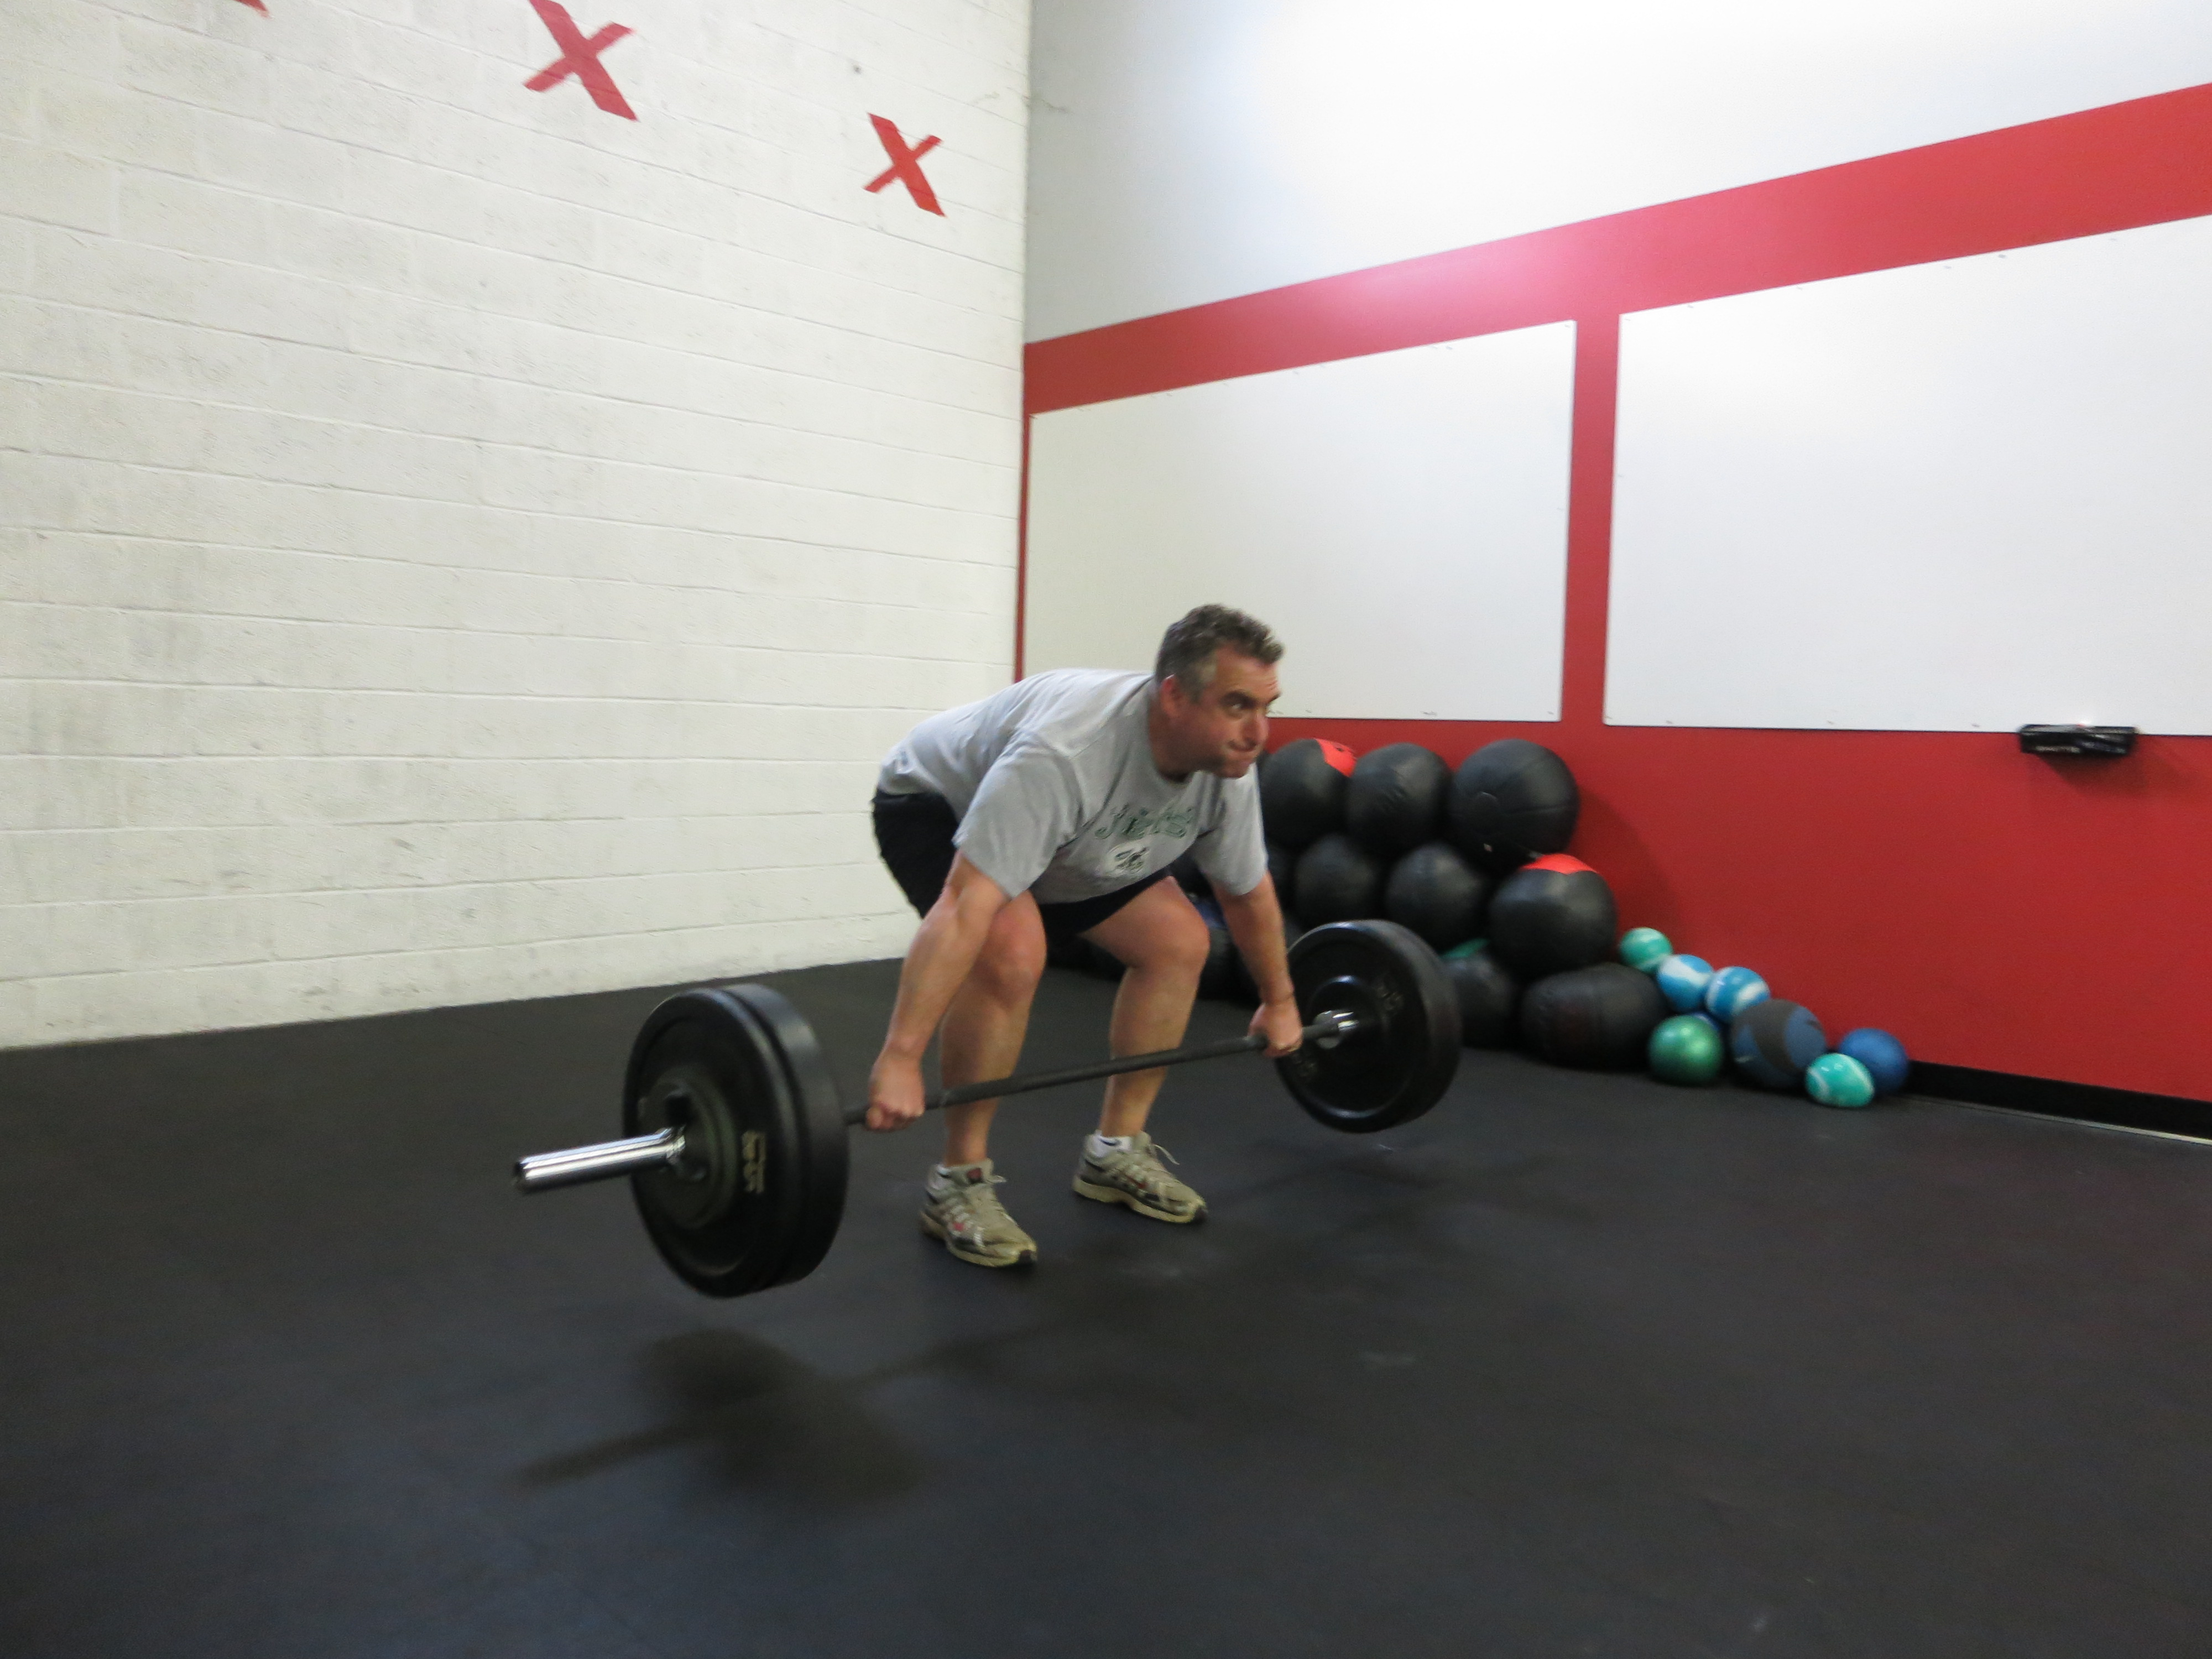 Sunday, April 14 WOD